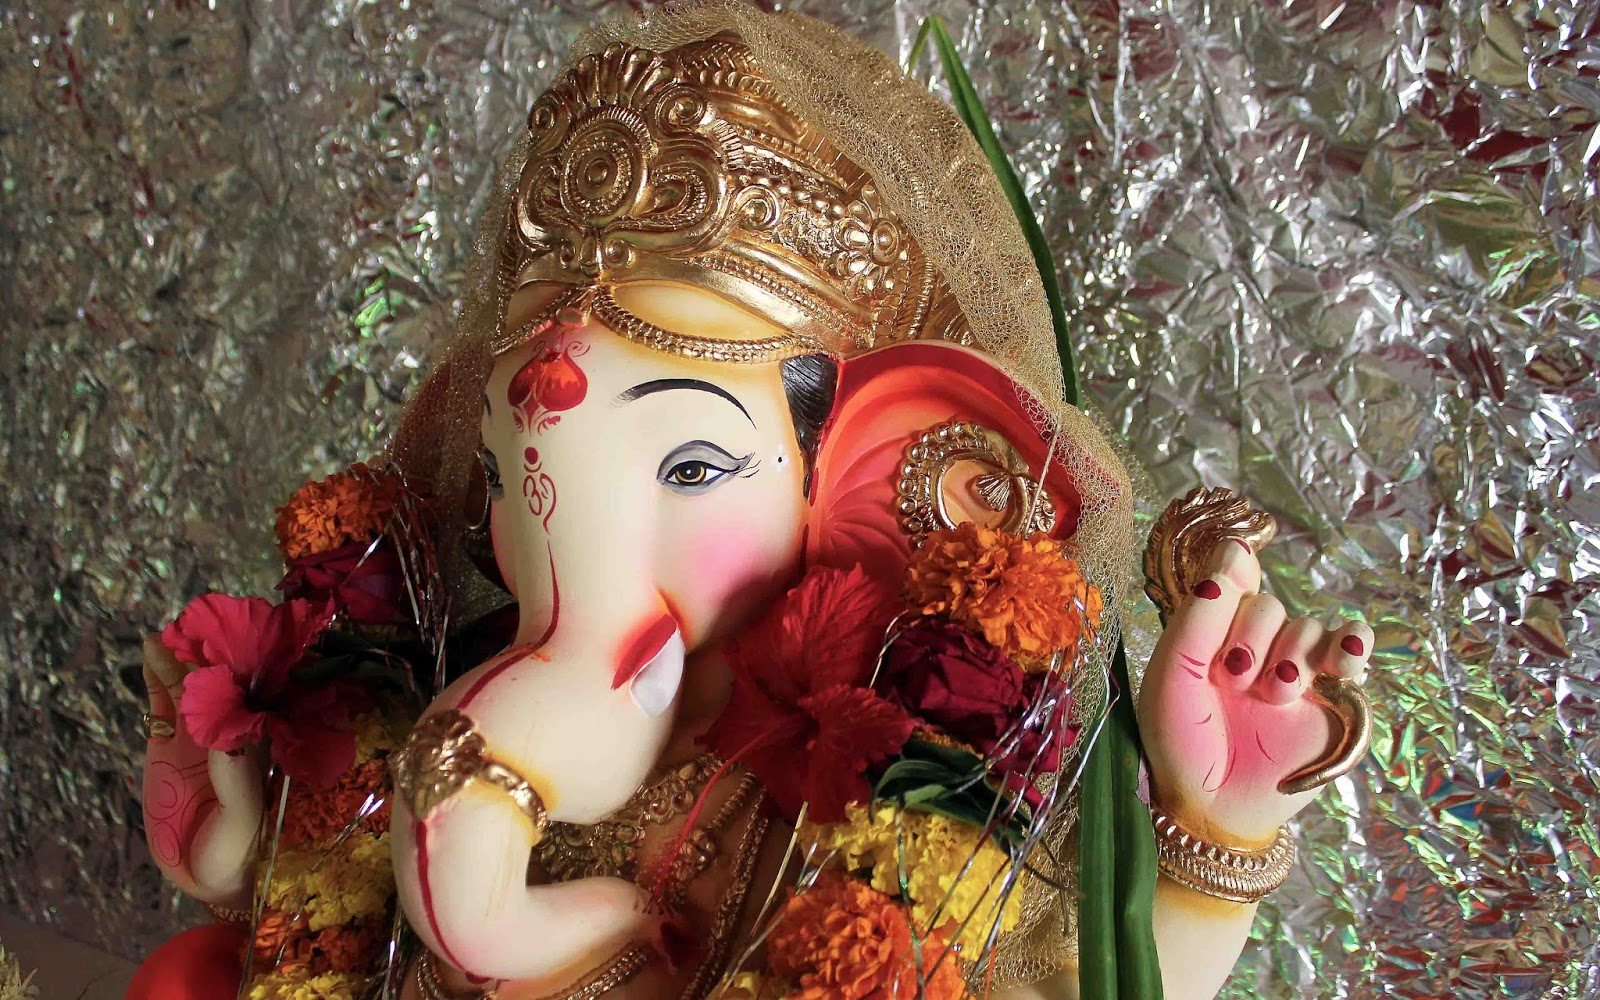 Hd wallpaper ganpati - Browse Ganesh 3d Wallpaper Free Download